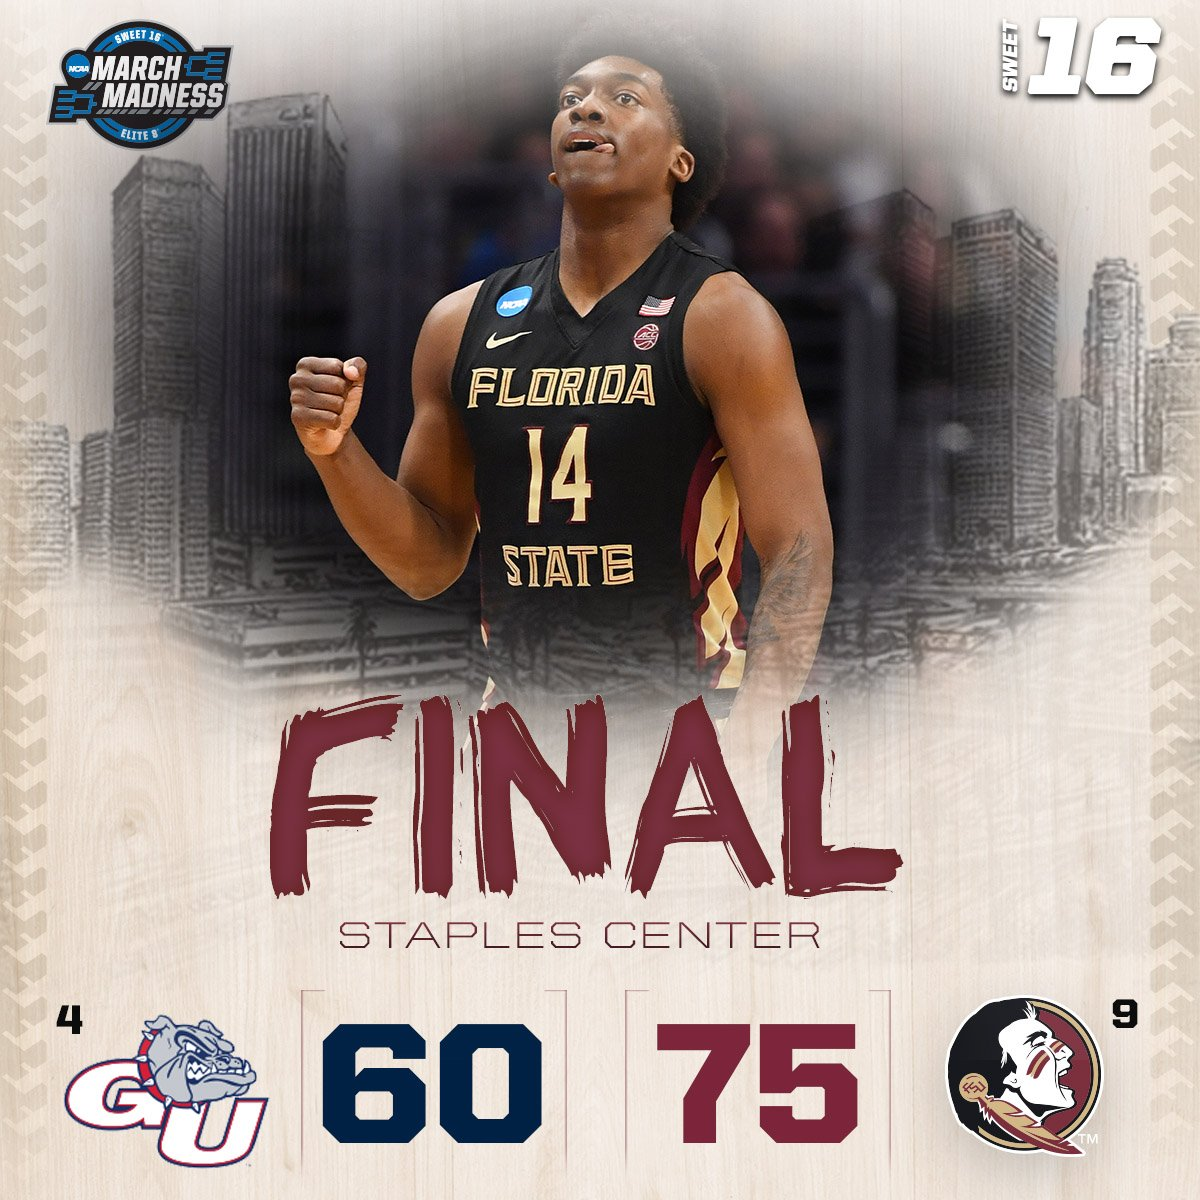 Florida State vence Gonzaga e volta ao Elite Eight após 25 anos - The Playoffs